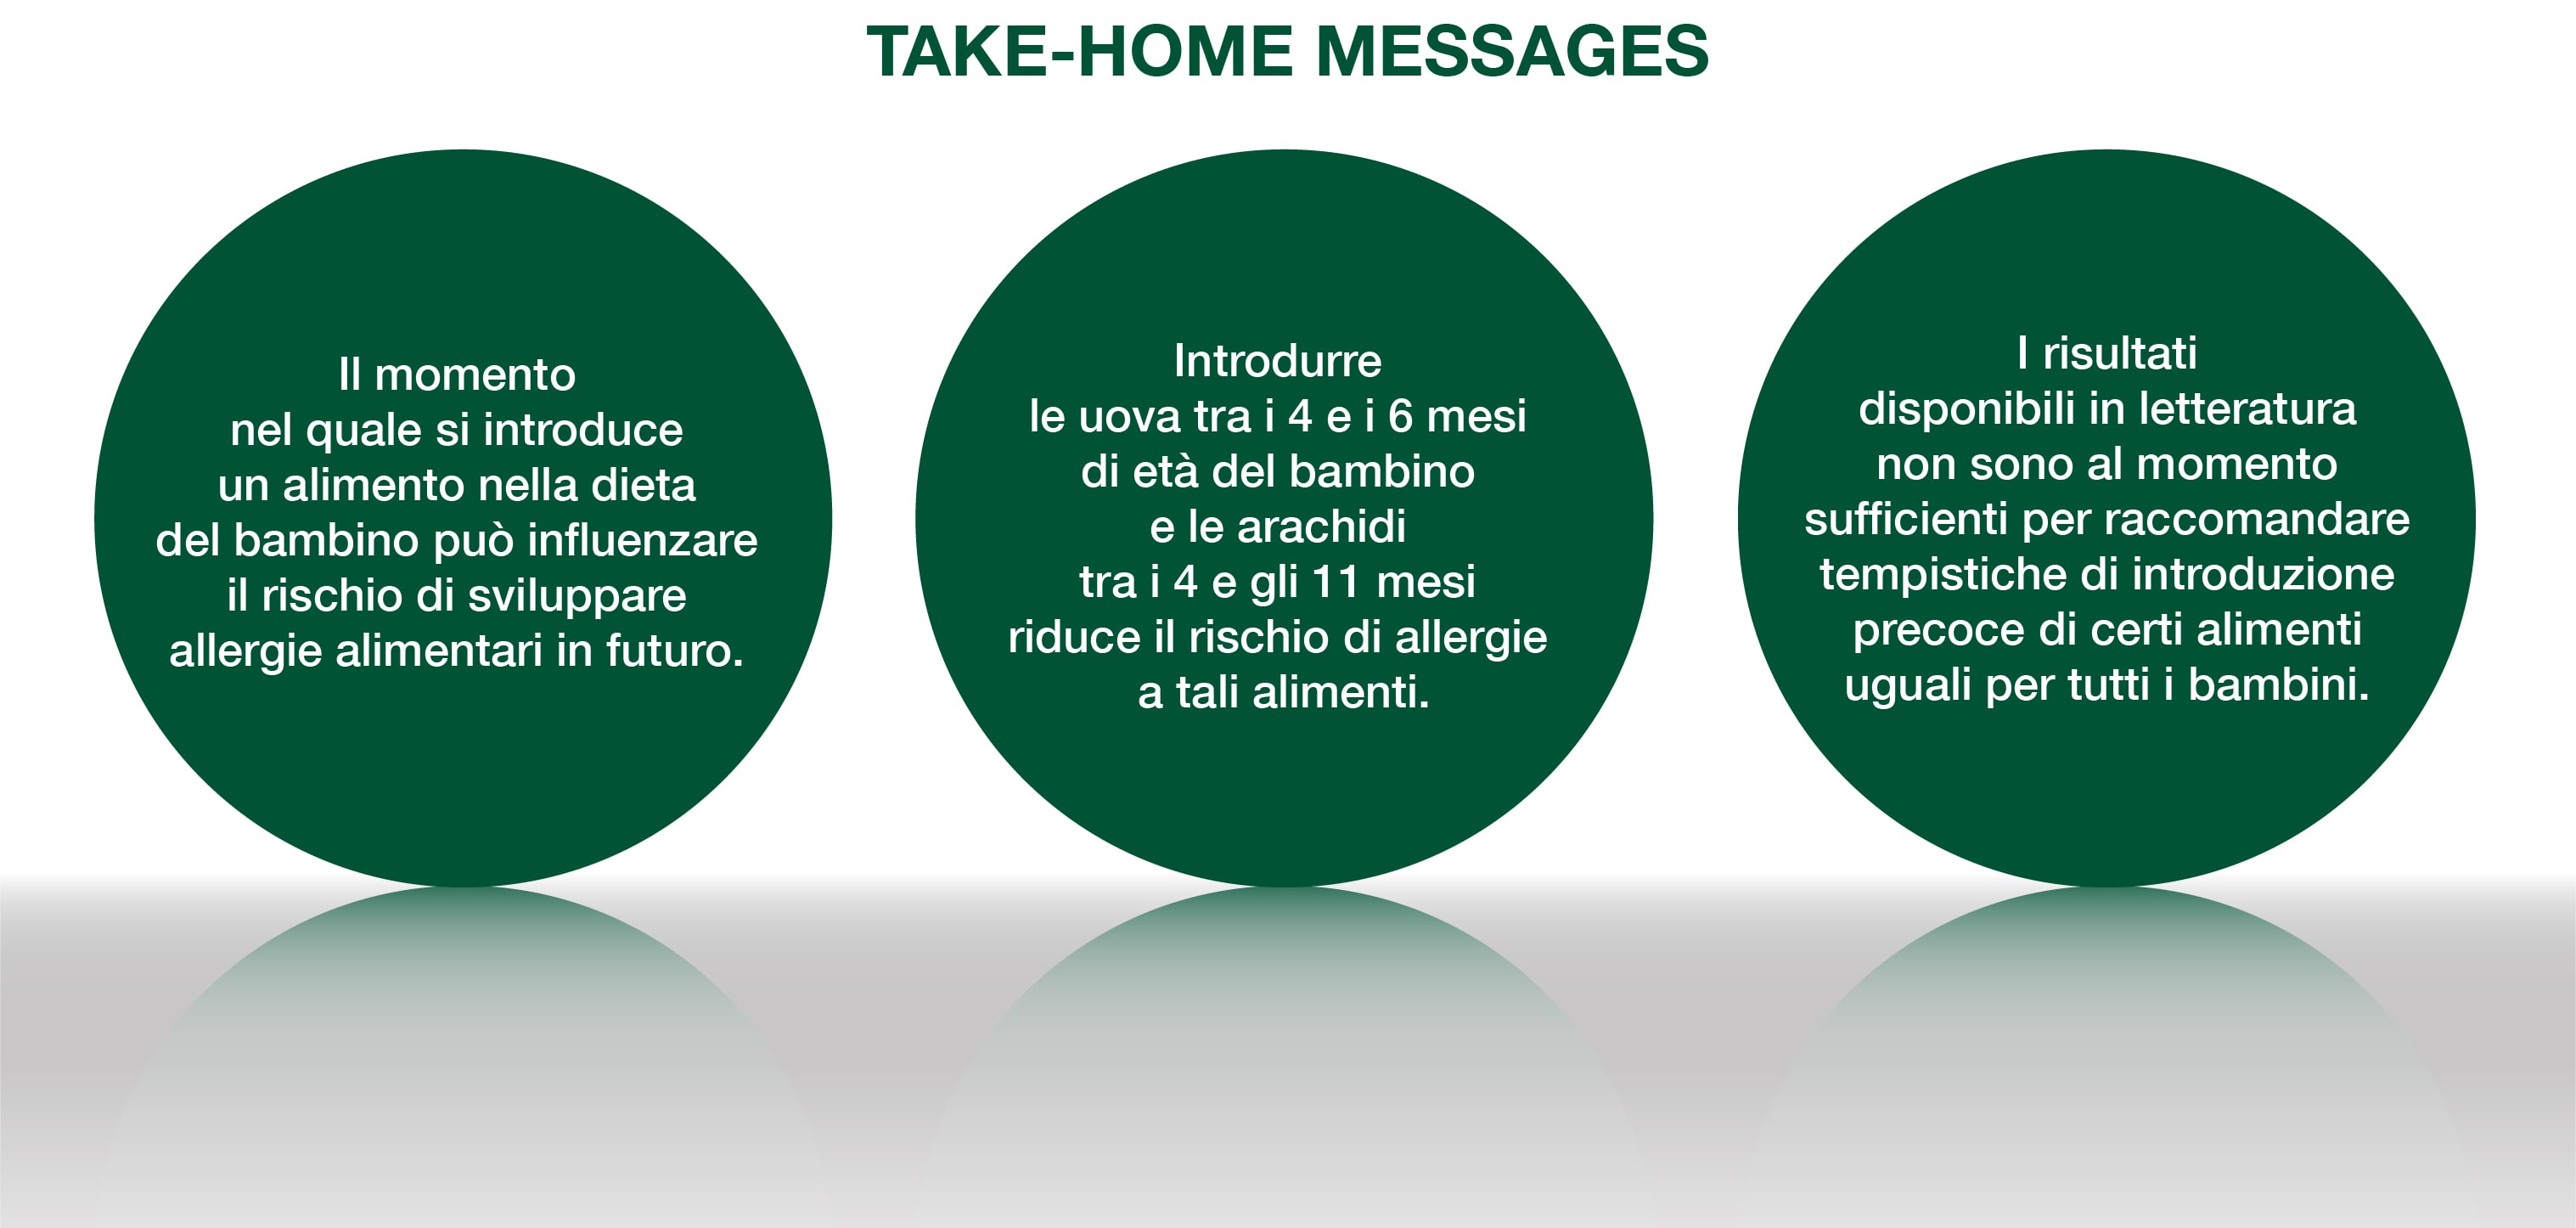 take-home-message-01-01 nov